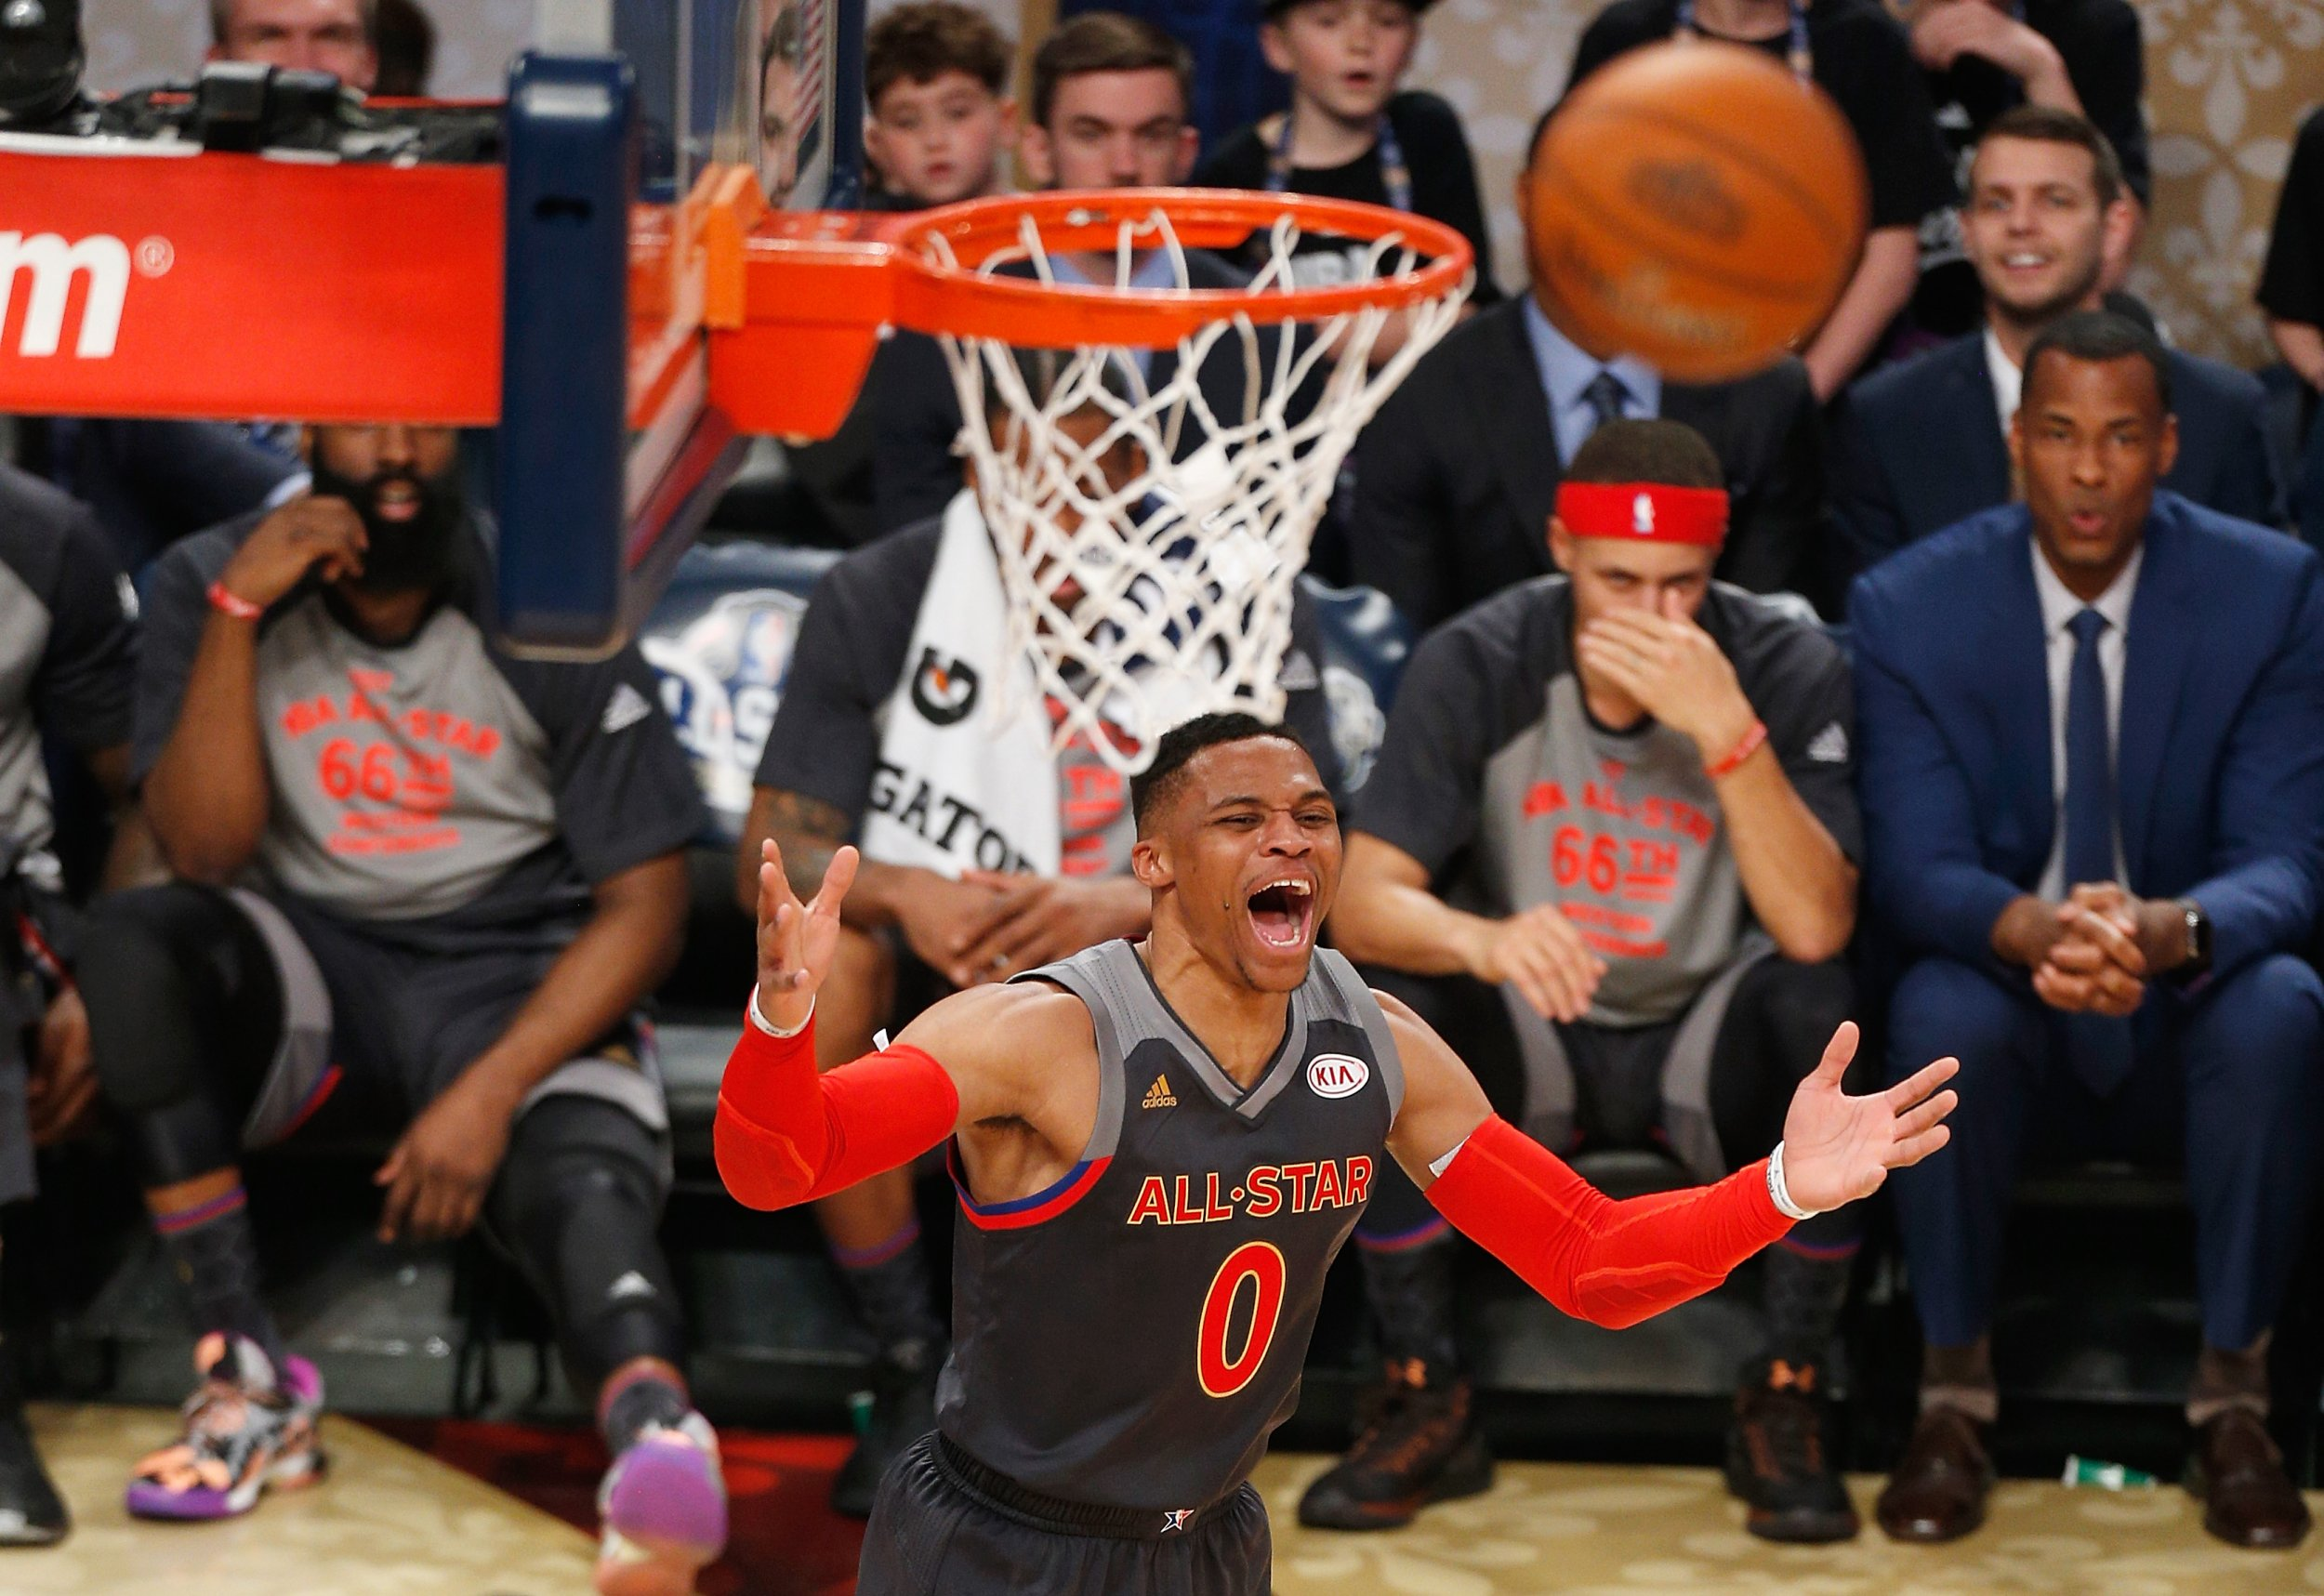 russ all star game